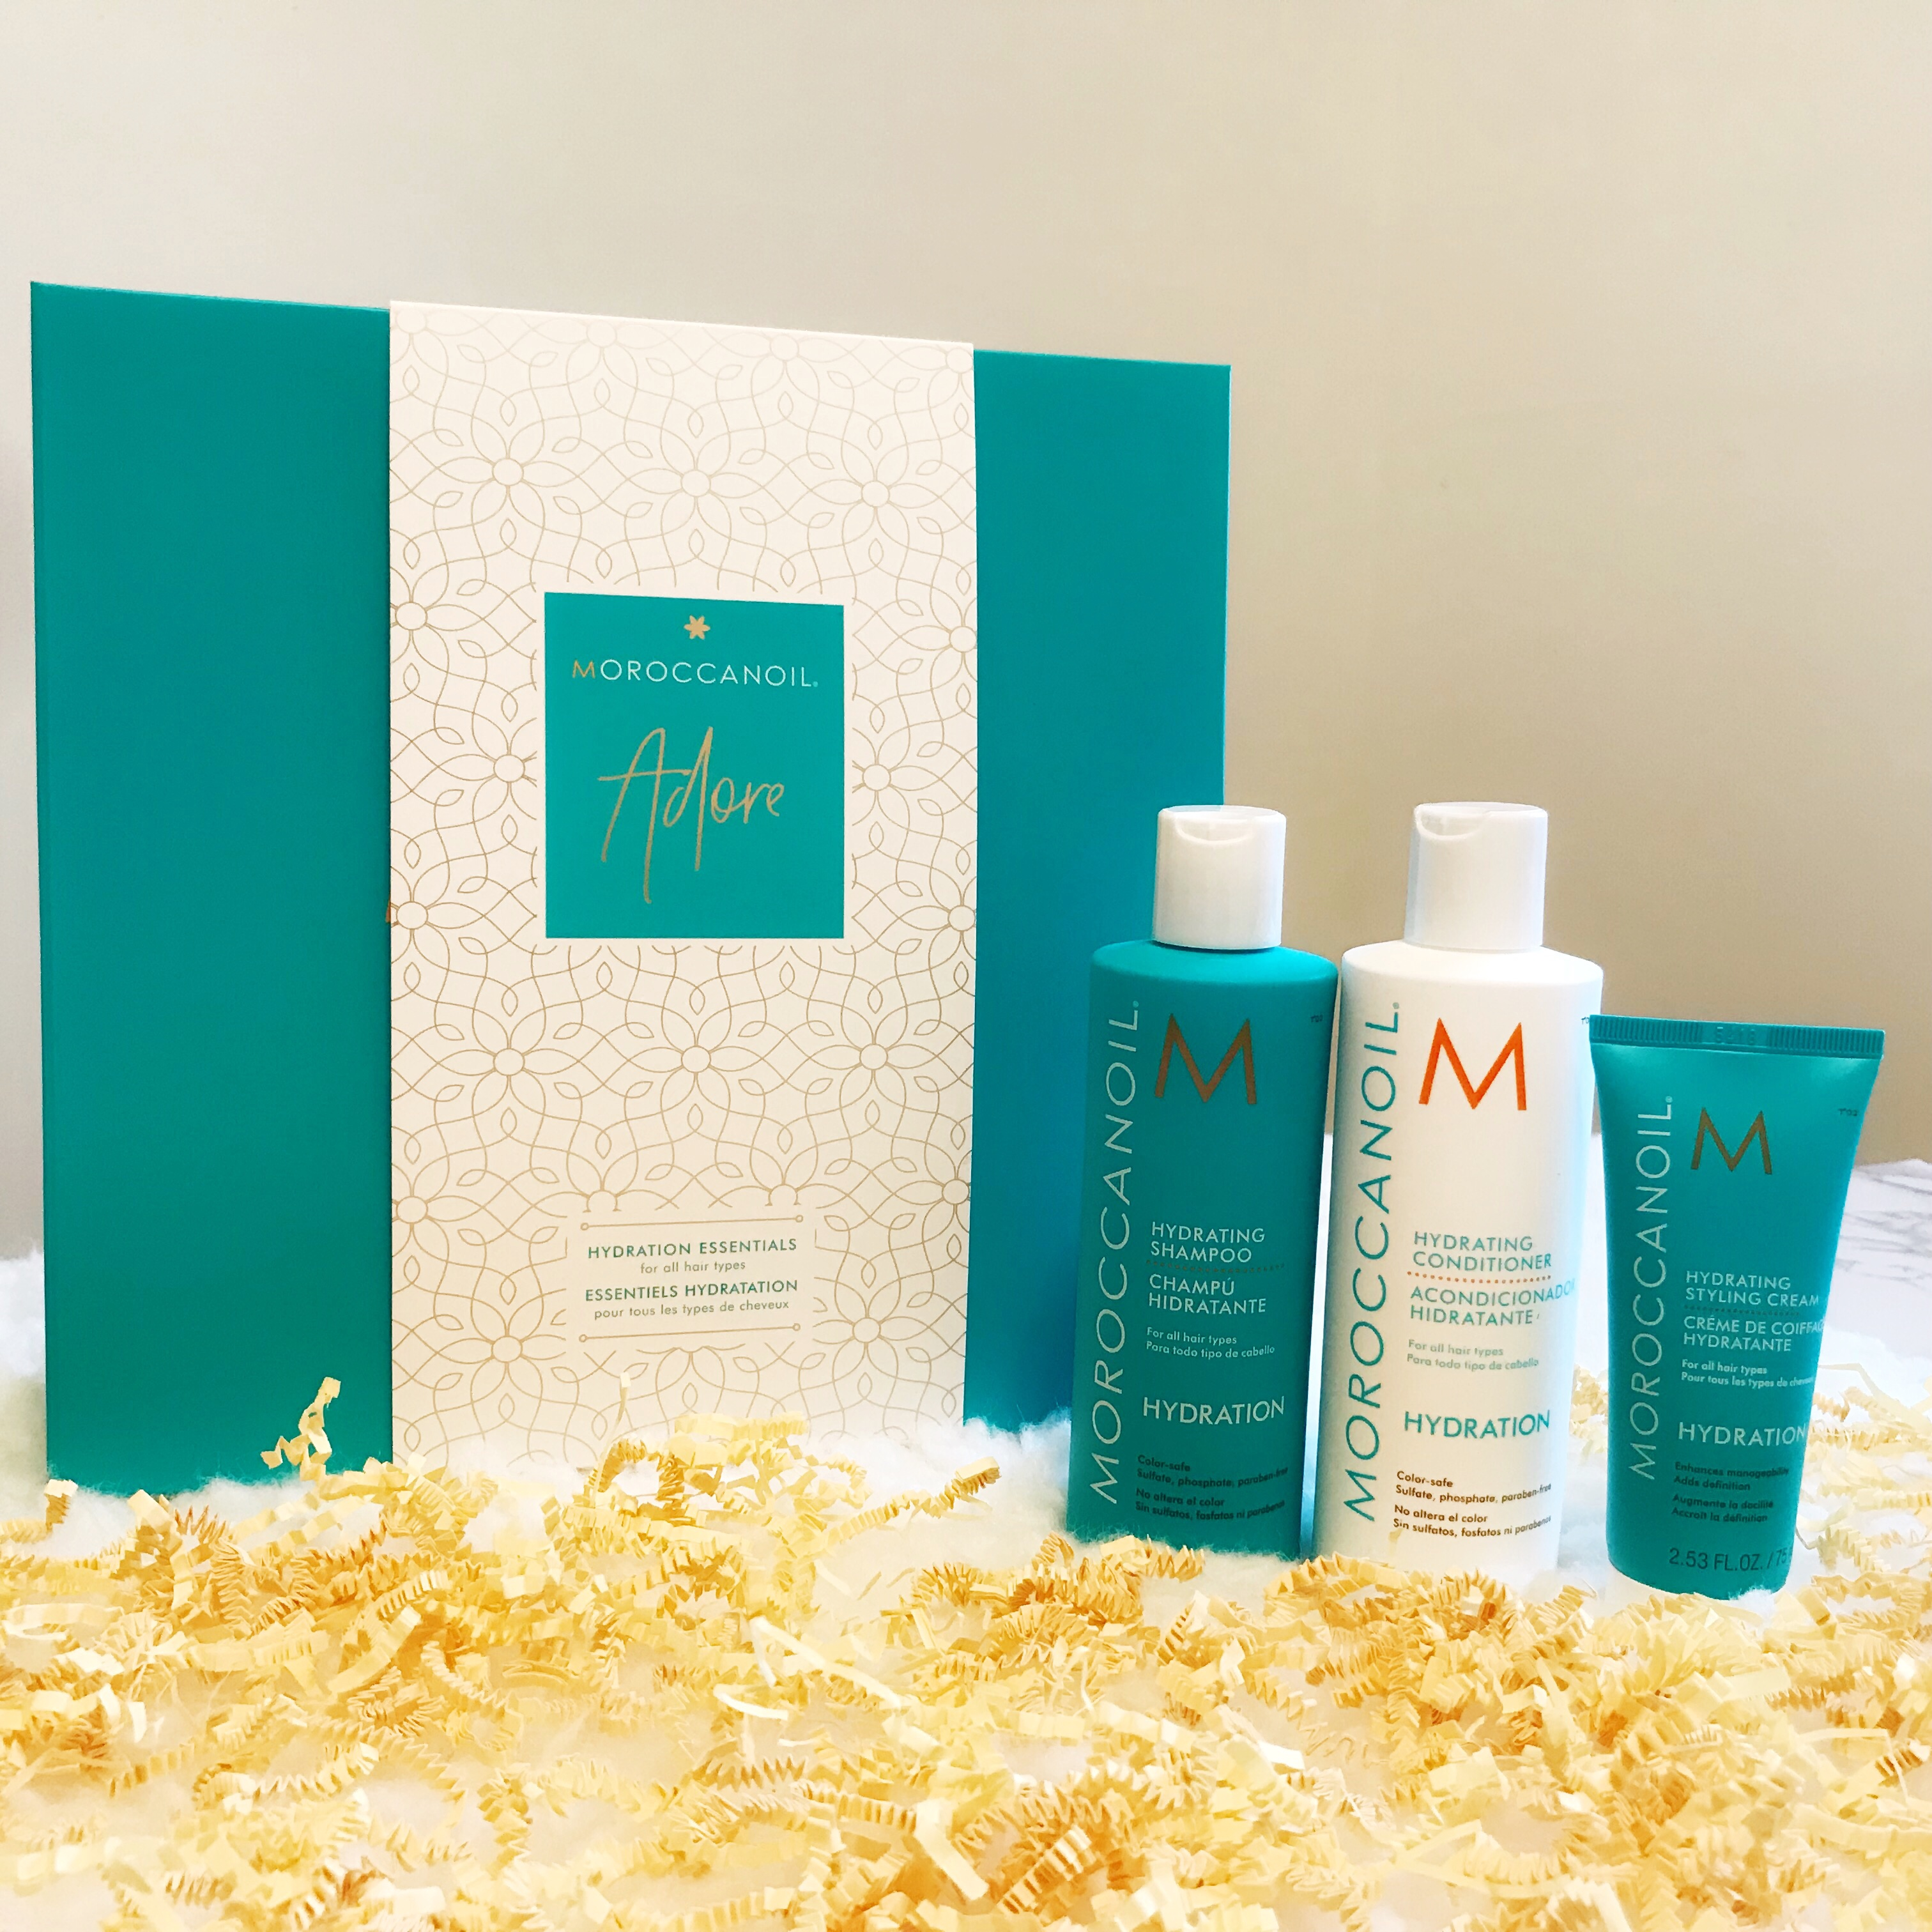 The Ultimate Holiday Gift For Beauty Lovers | HauteSpark.com